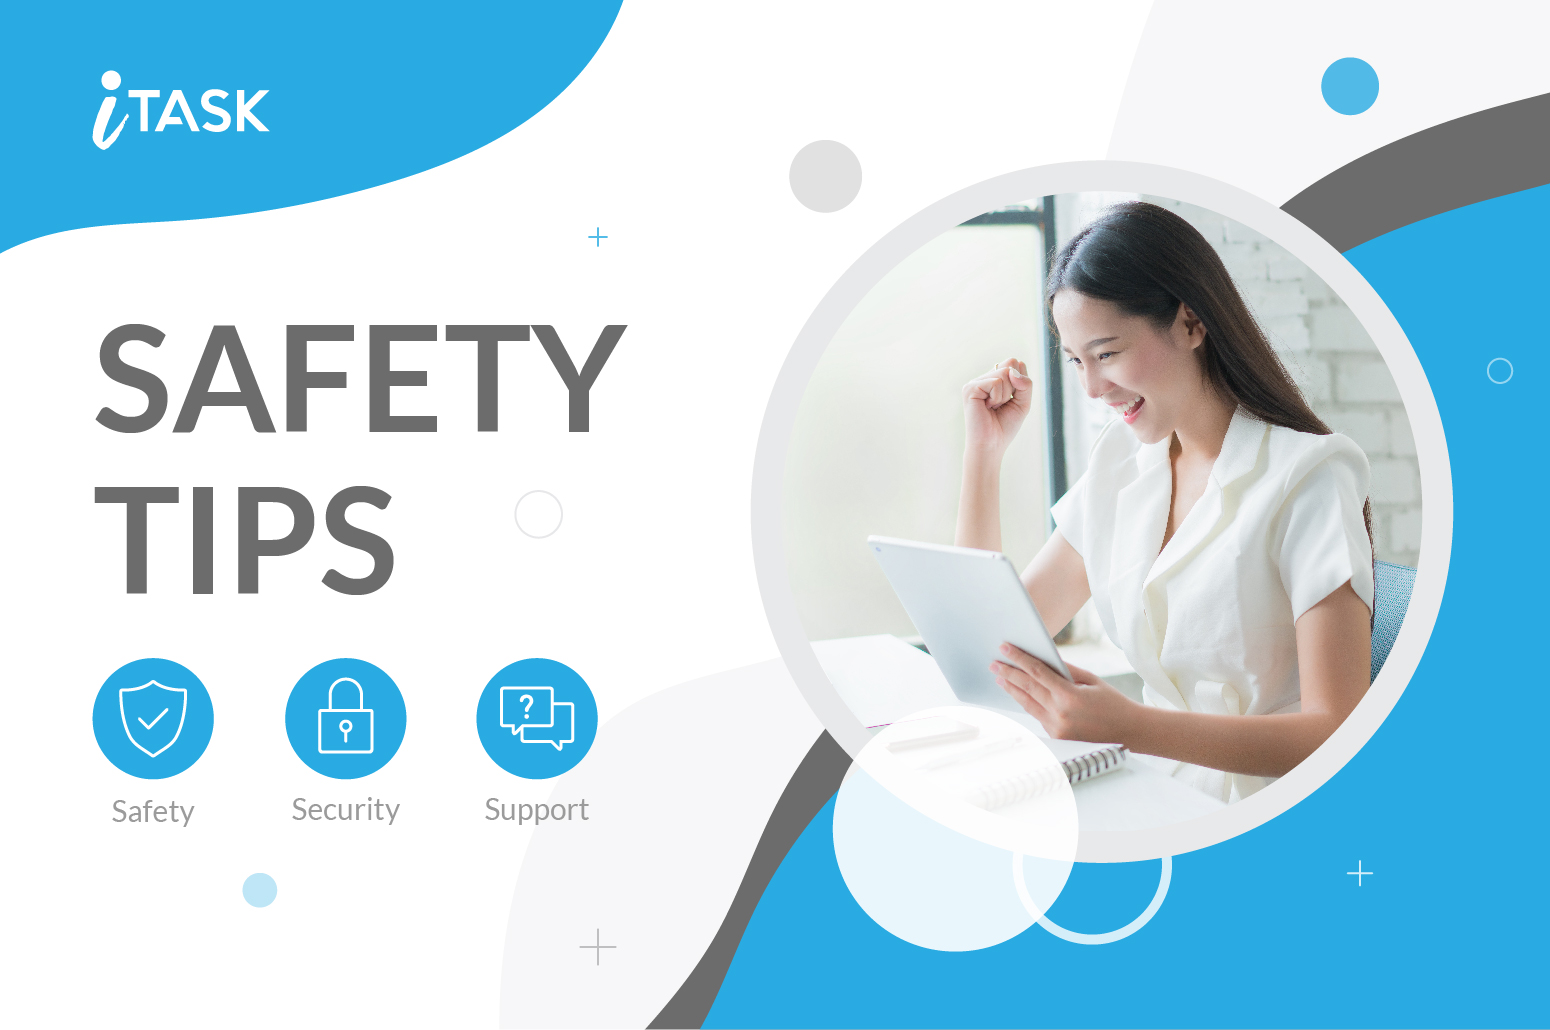 Safety, Security and Support